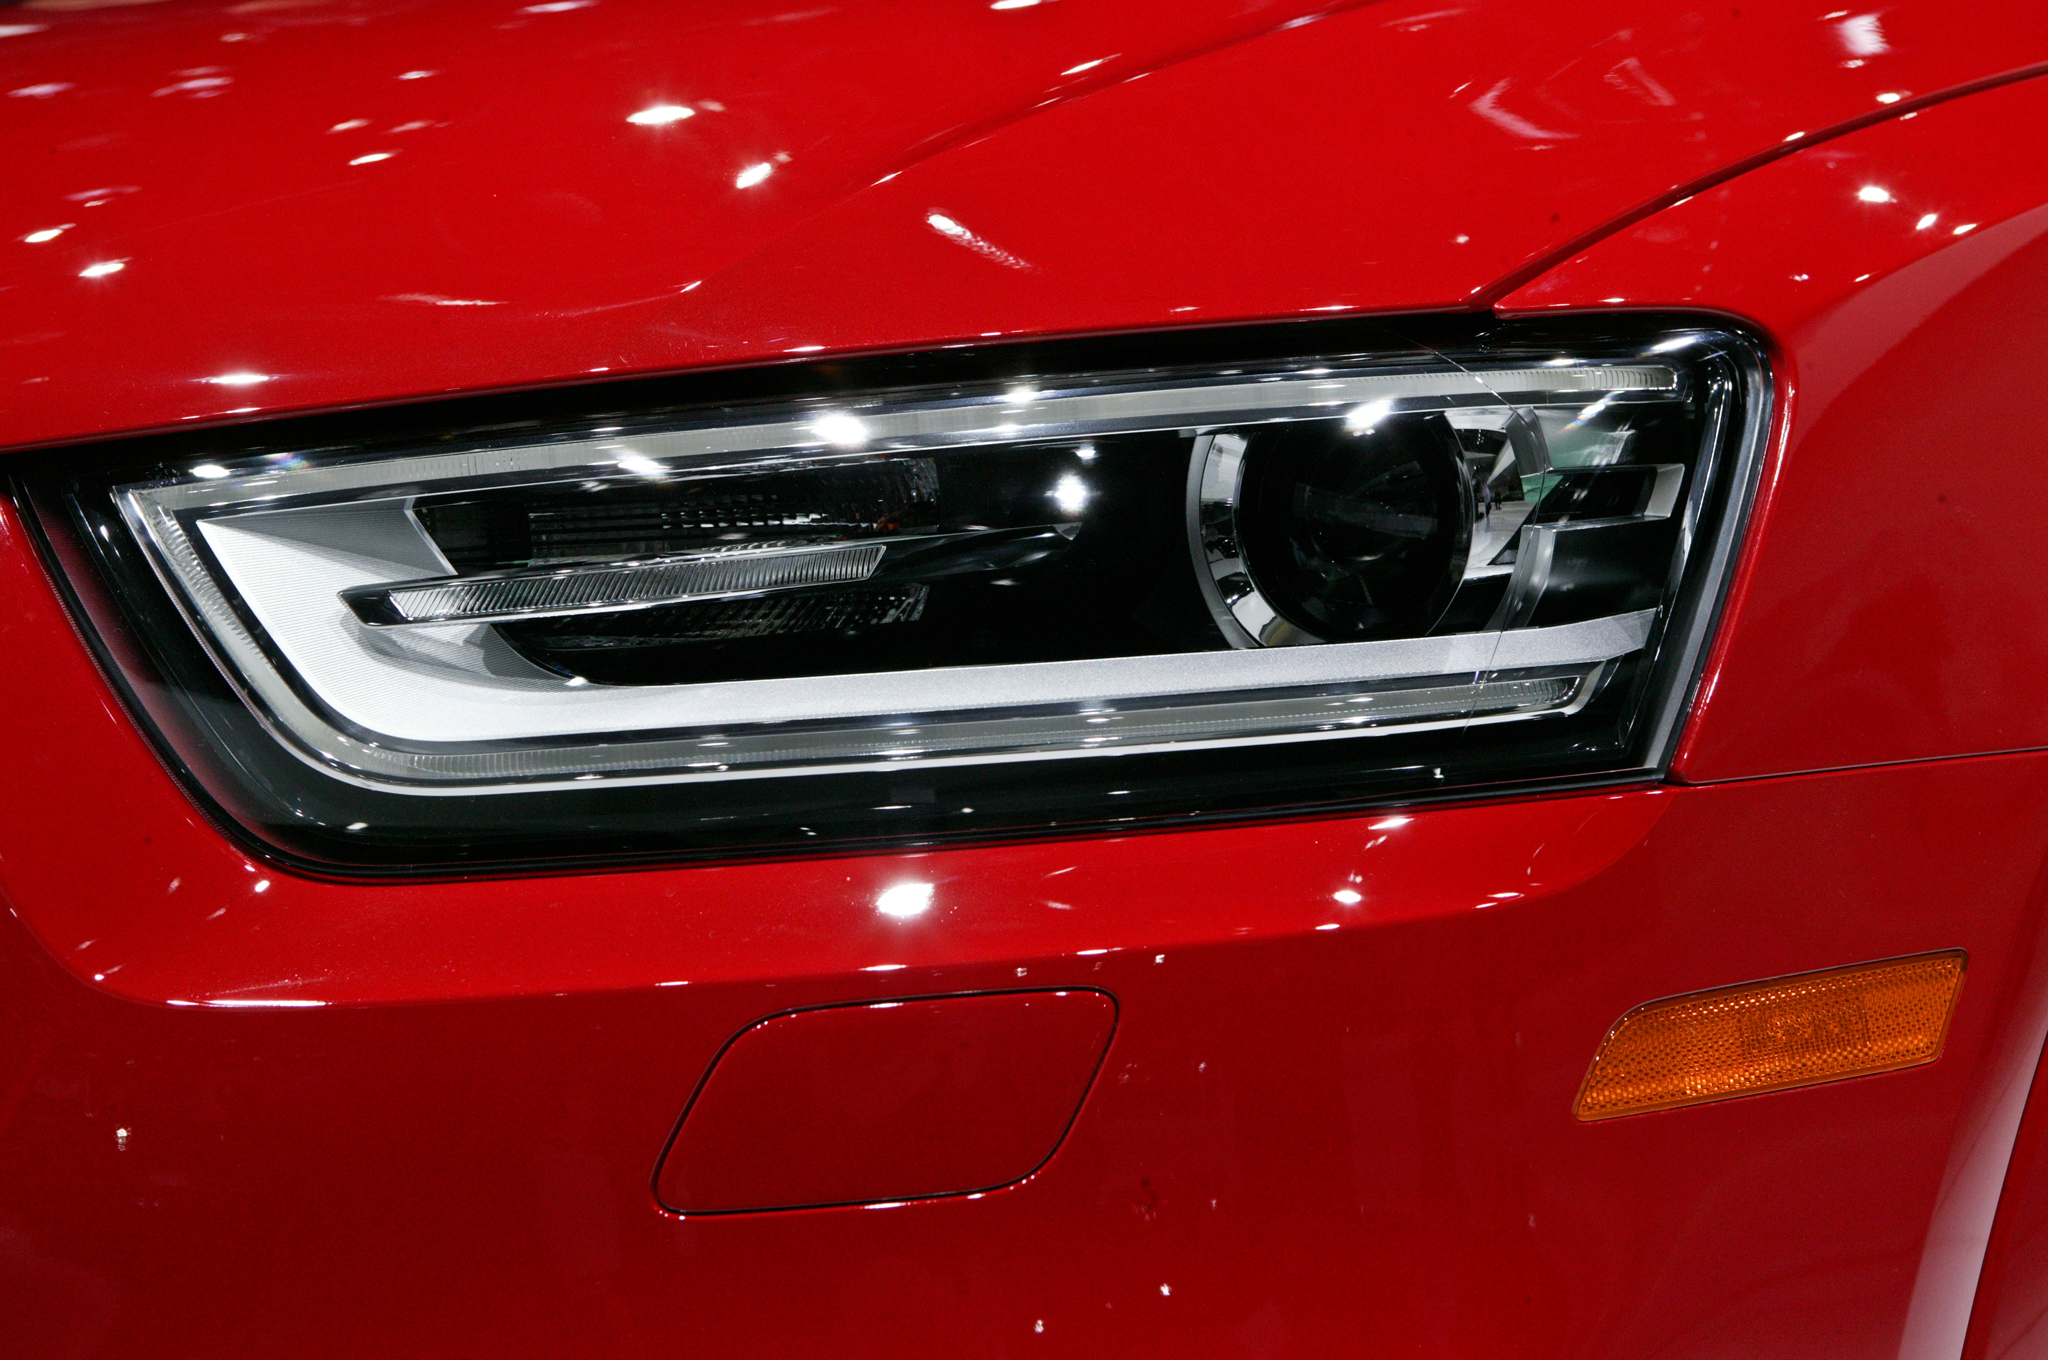 2015 Audi Q3 Front Headlight (View 21 of 21)